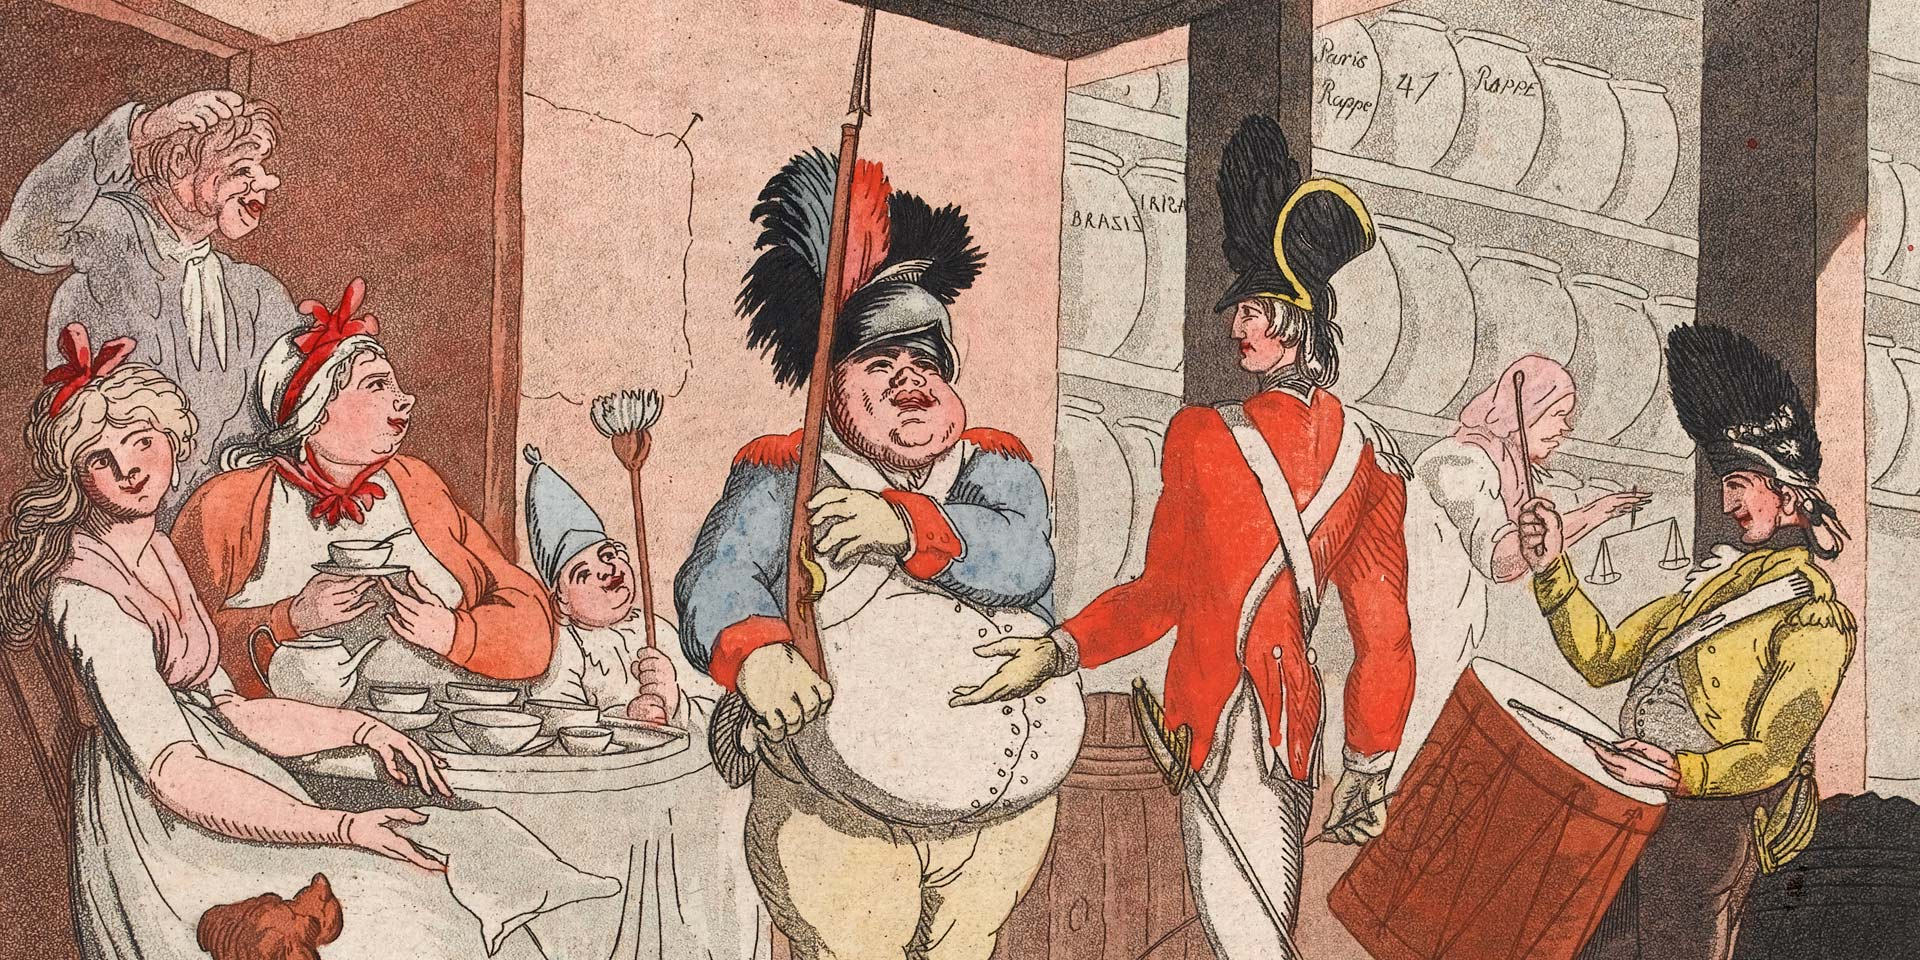 The French Invasion Scare and the Literature of Fear in Britain 1797-1805